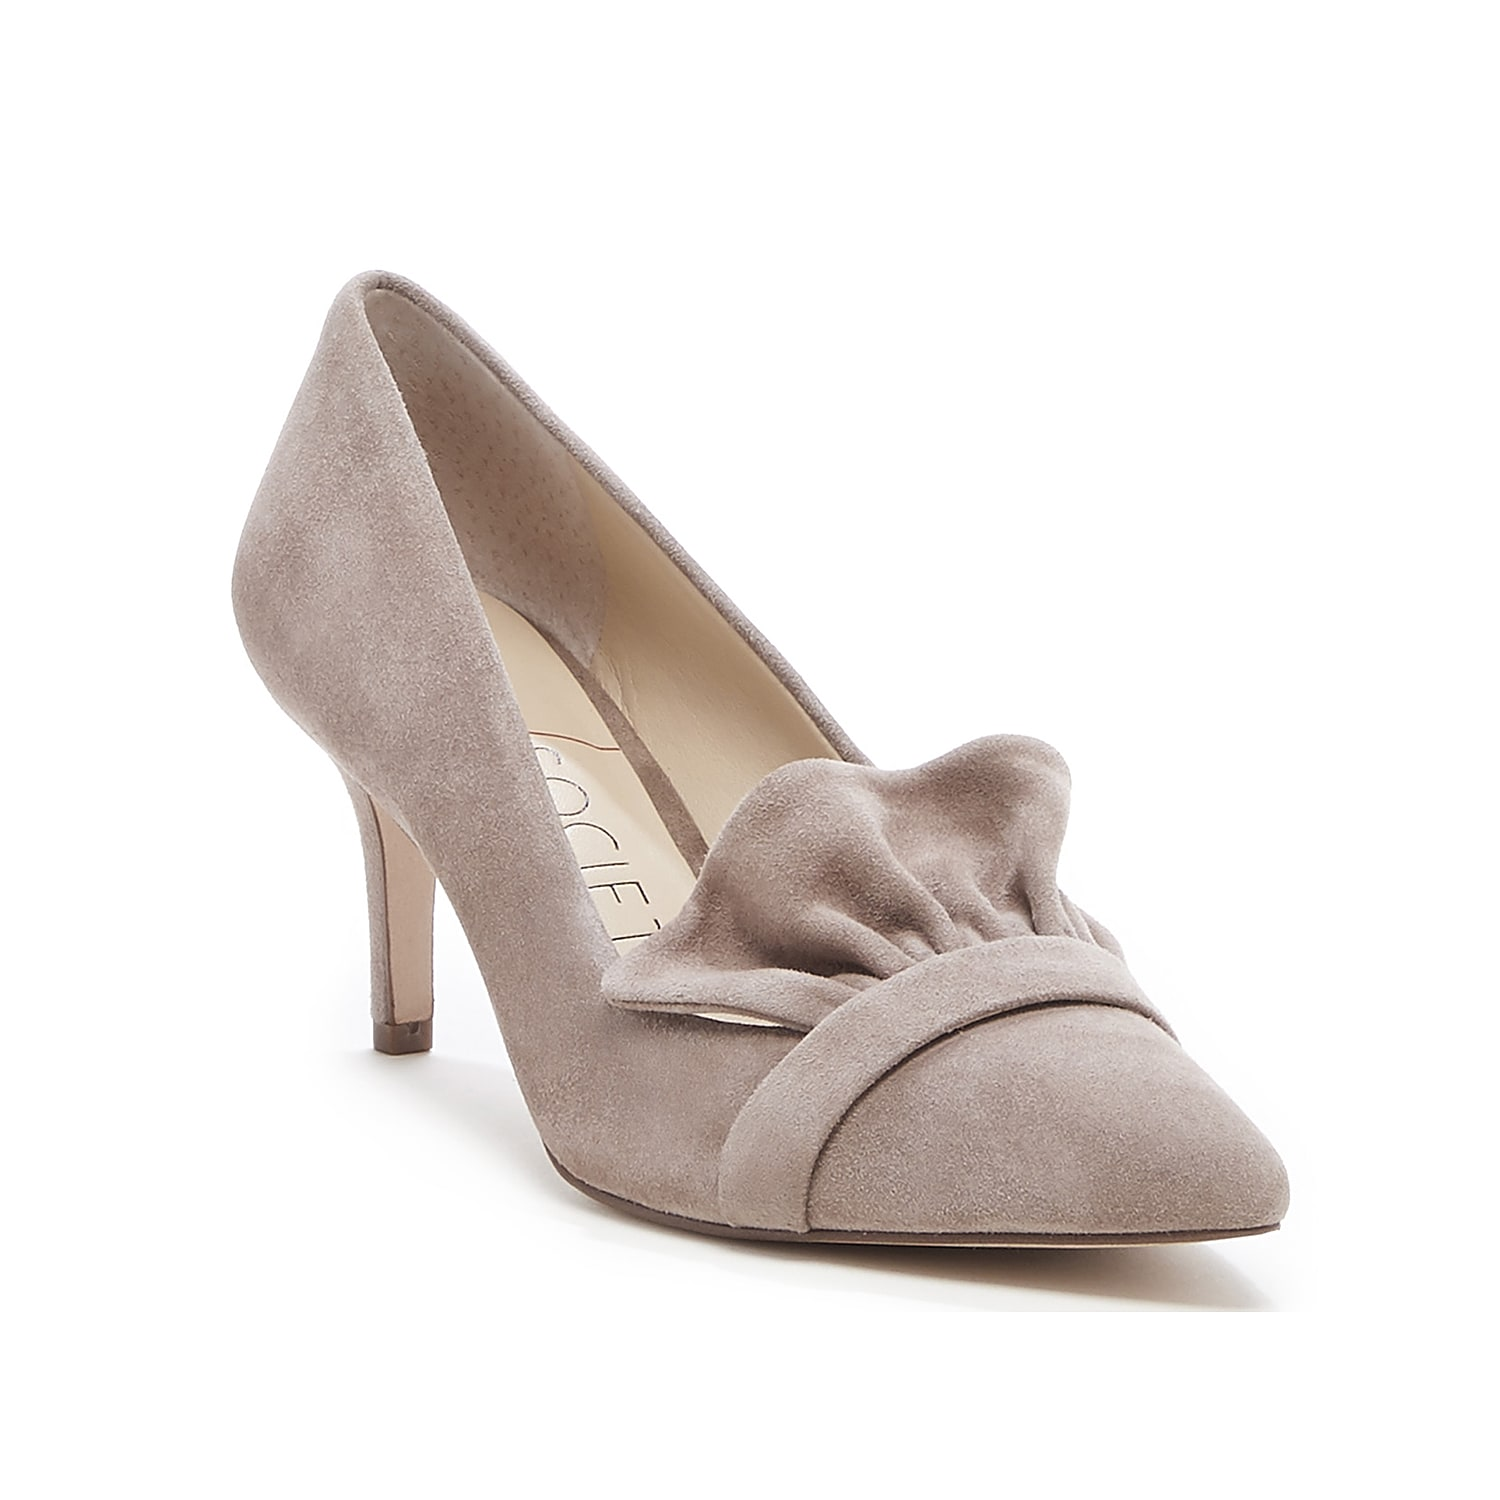 Step into charming style with the Darbia pump from Sole Society. Featuring a ruffled accent at the pointed toe, this pair will complement skirts, jeans, and everything in between.